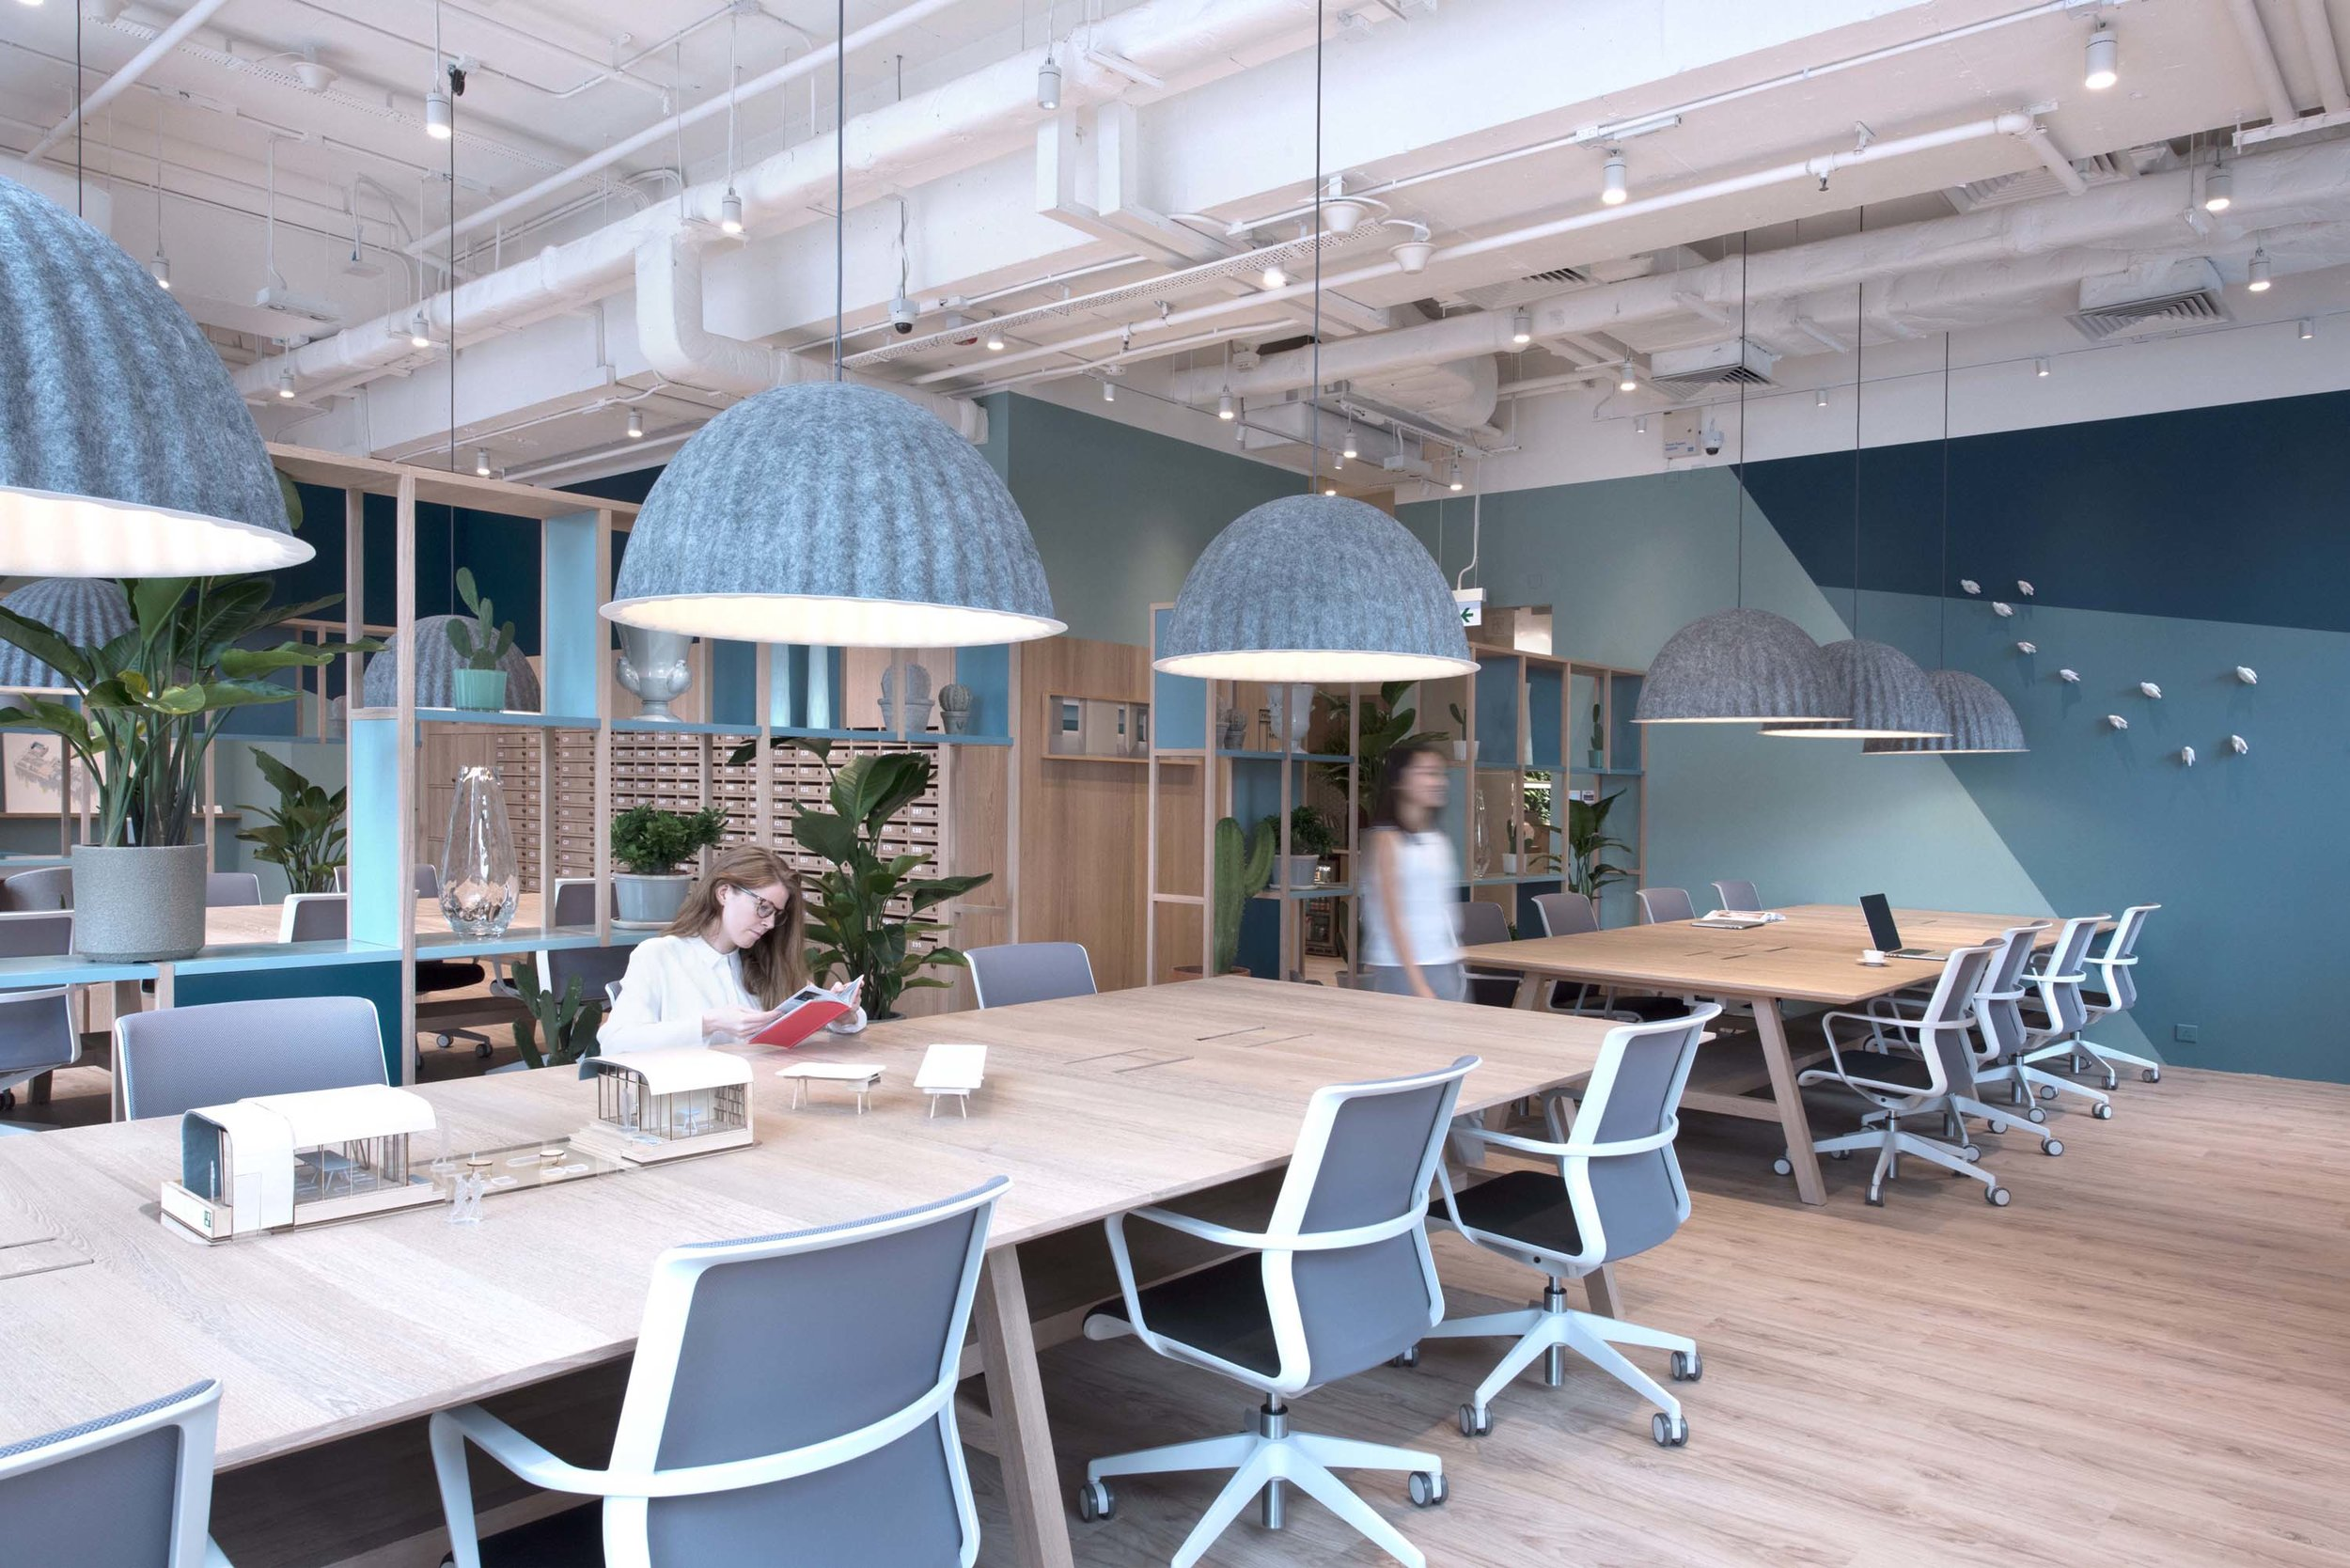 12_Bean Buro_Web_Workplace_The Work Project.jpg